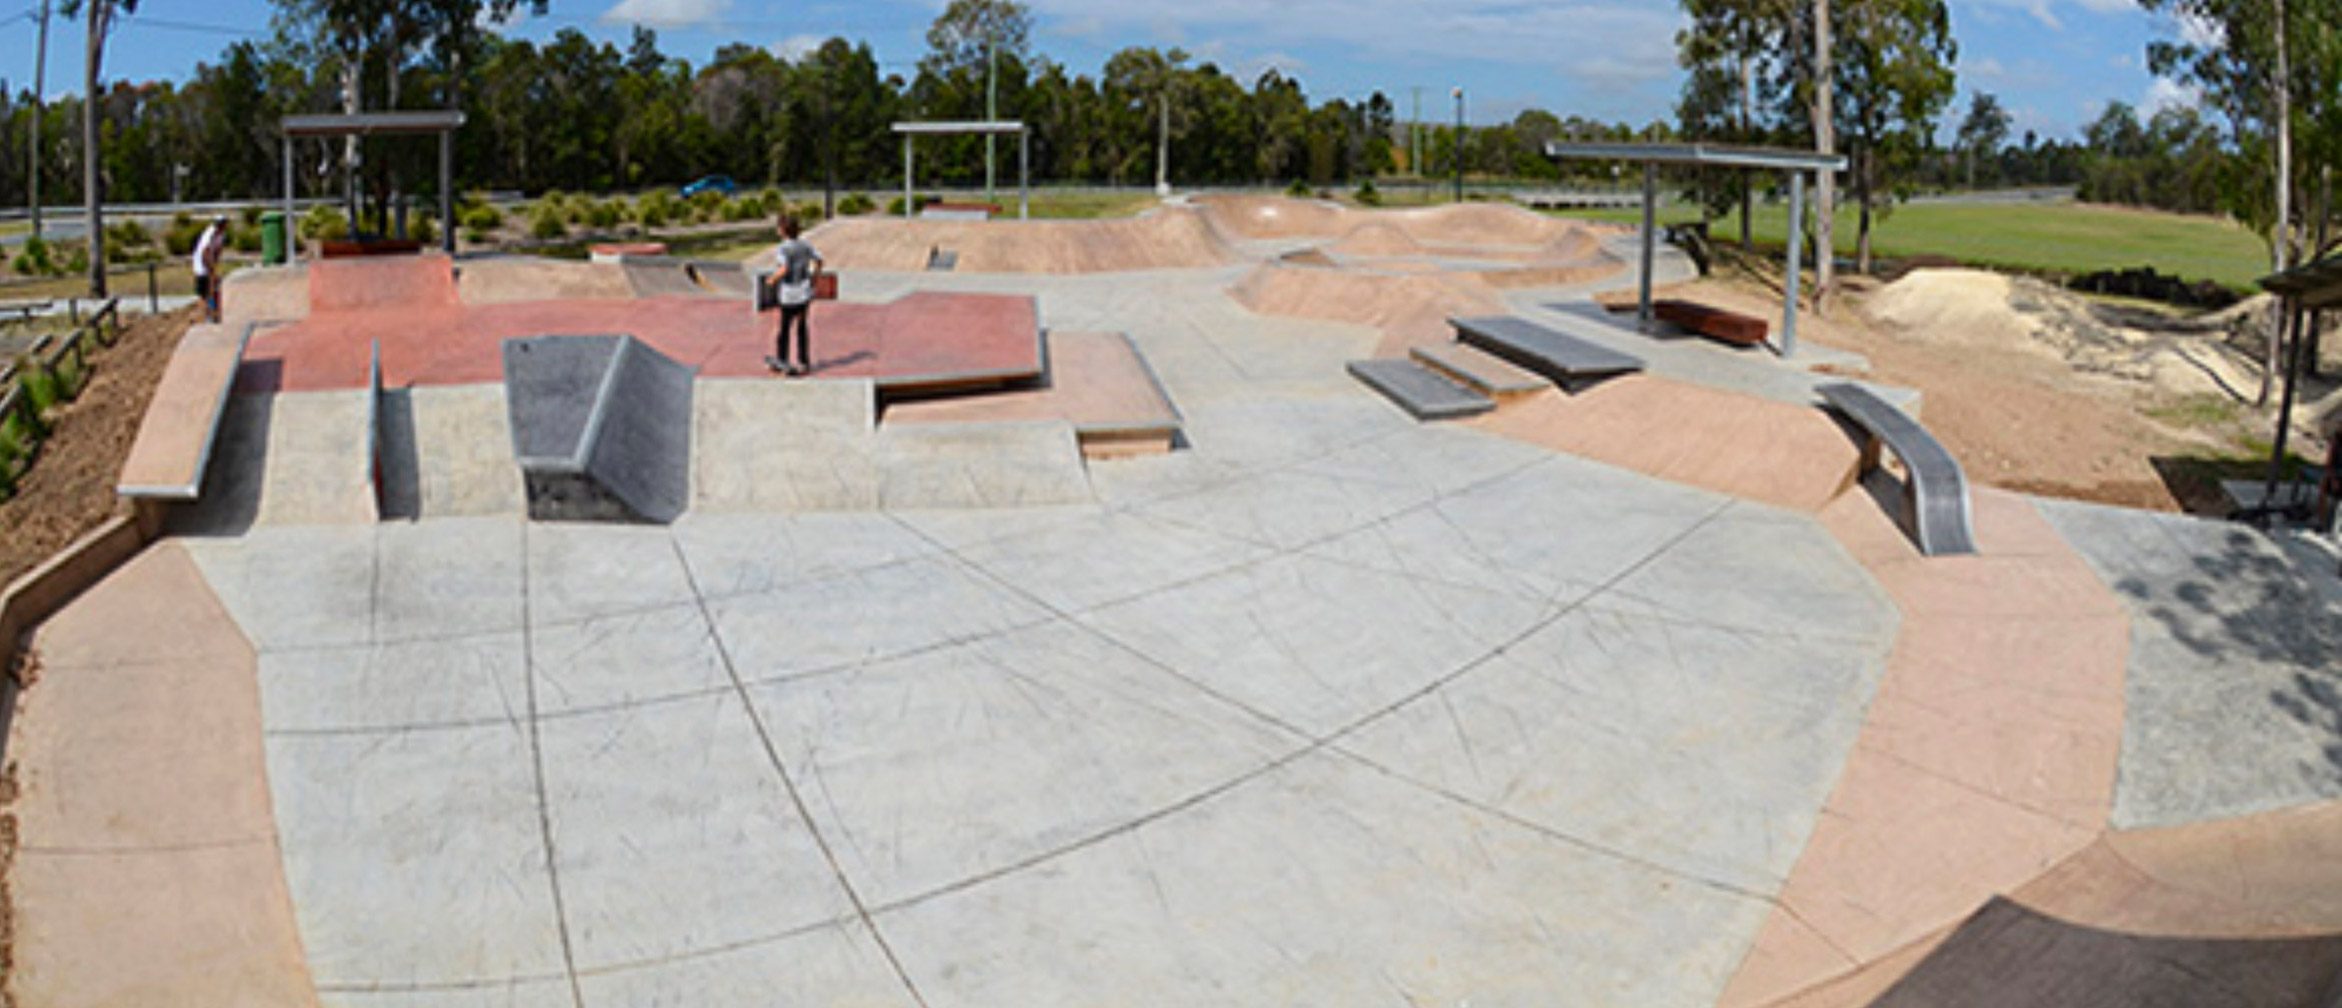 Ormeau skate park street section, Concrete Skateparks build